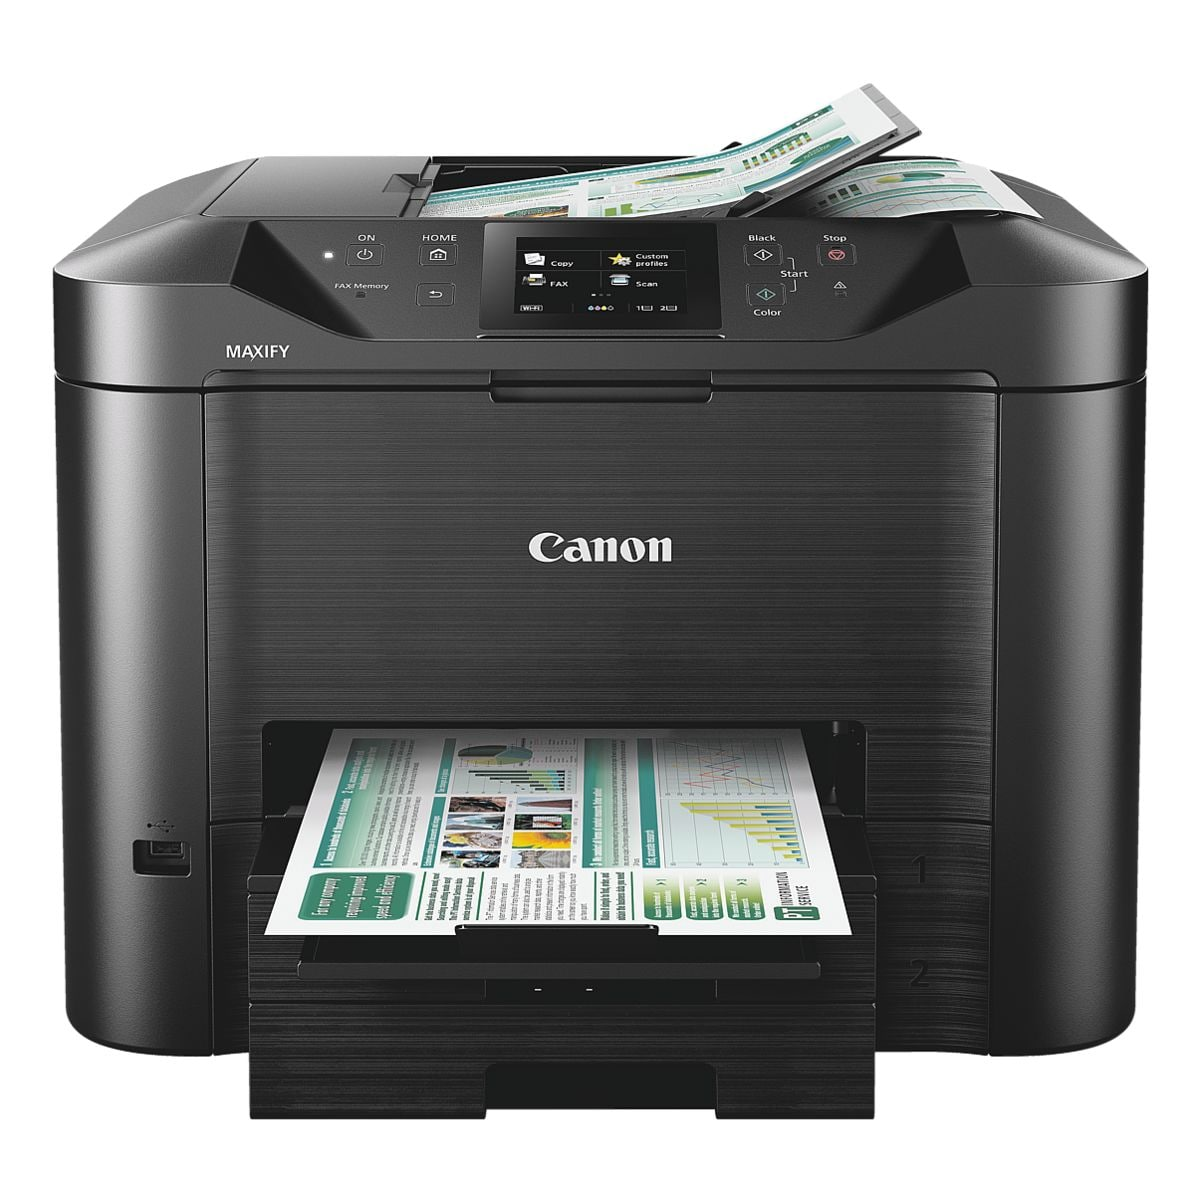 canon multifunktionsdrucker maxify mb5450 bei otto. Black Bedroom Furniture Sets. Home Design Ideas